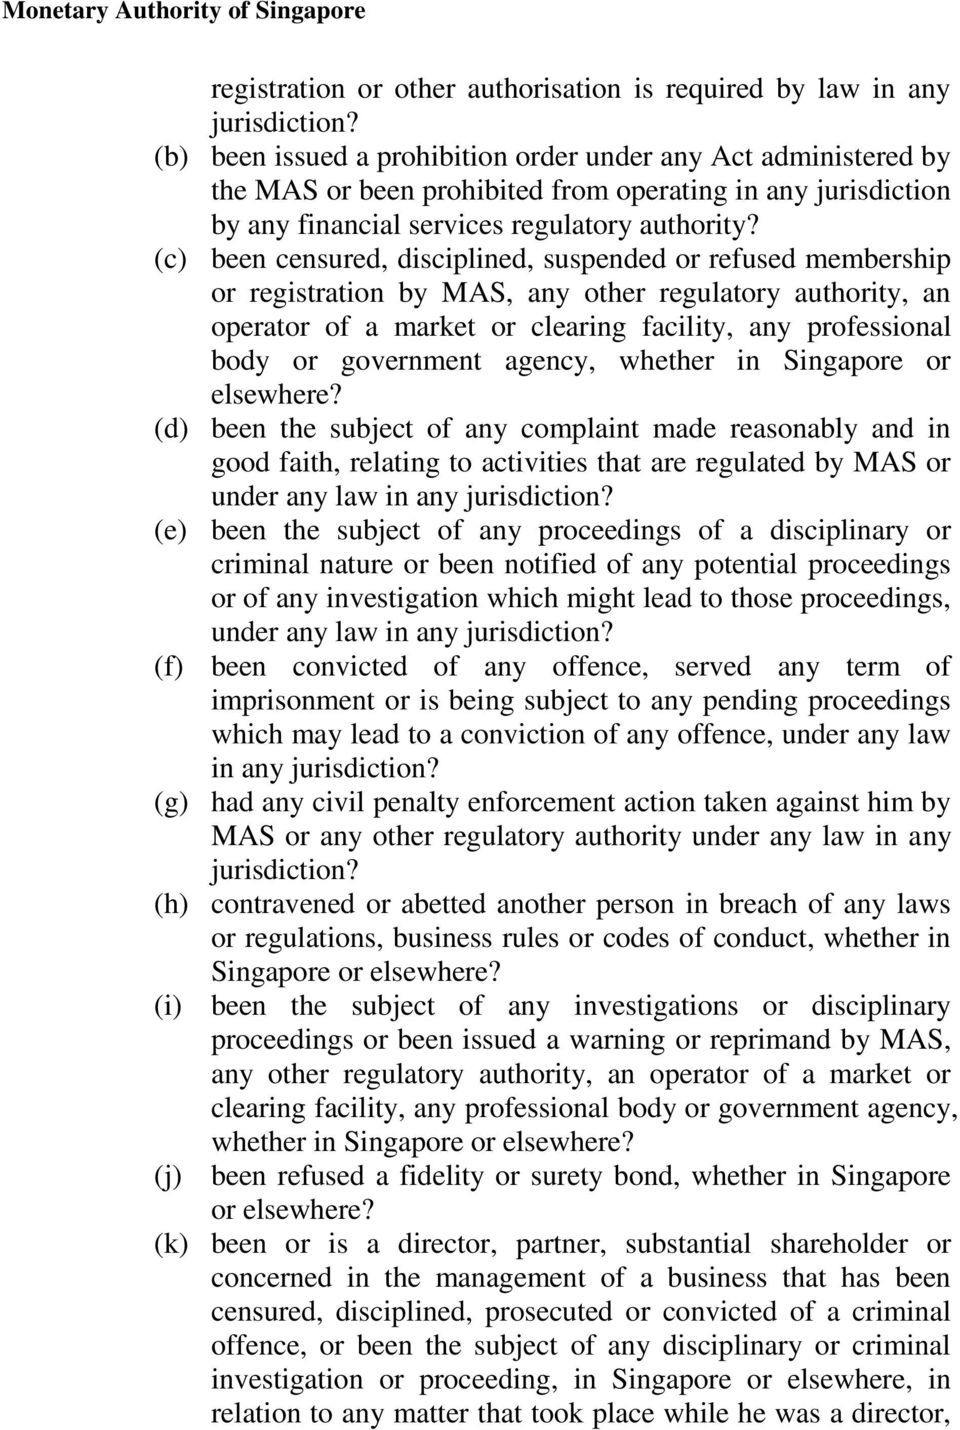 (c) been censured, disciplined, suspended or refused membership or registration by MAS, any other regulatory authority, an operator of a market or clearing facility, any professional body or